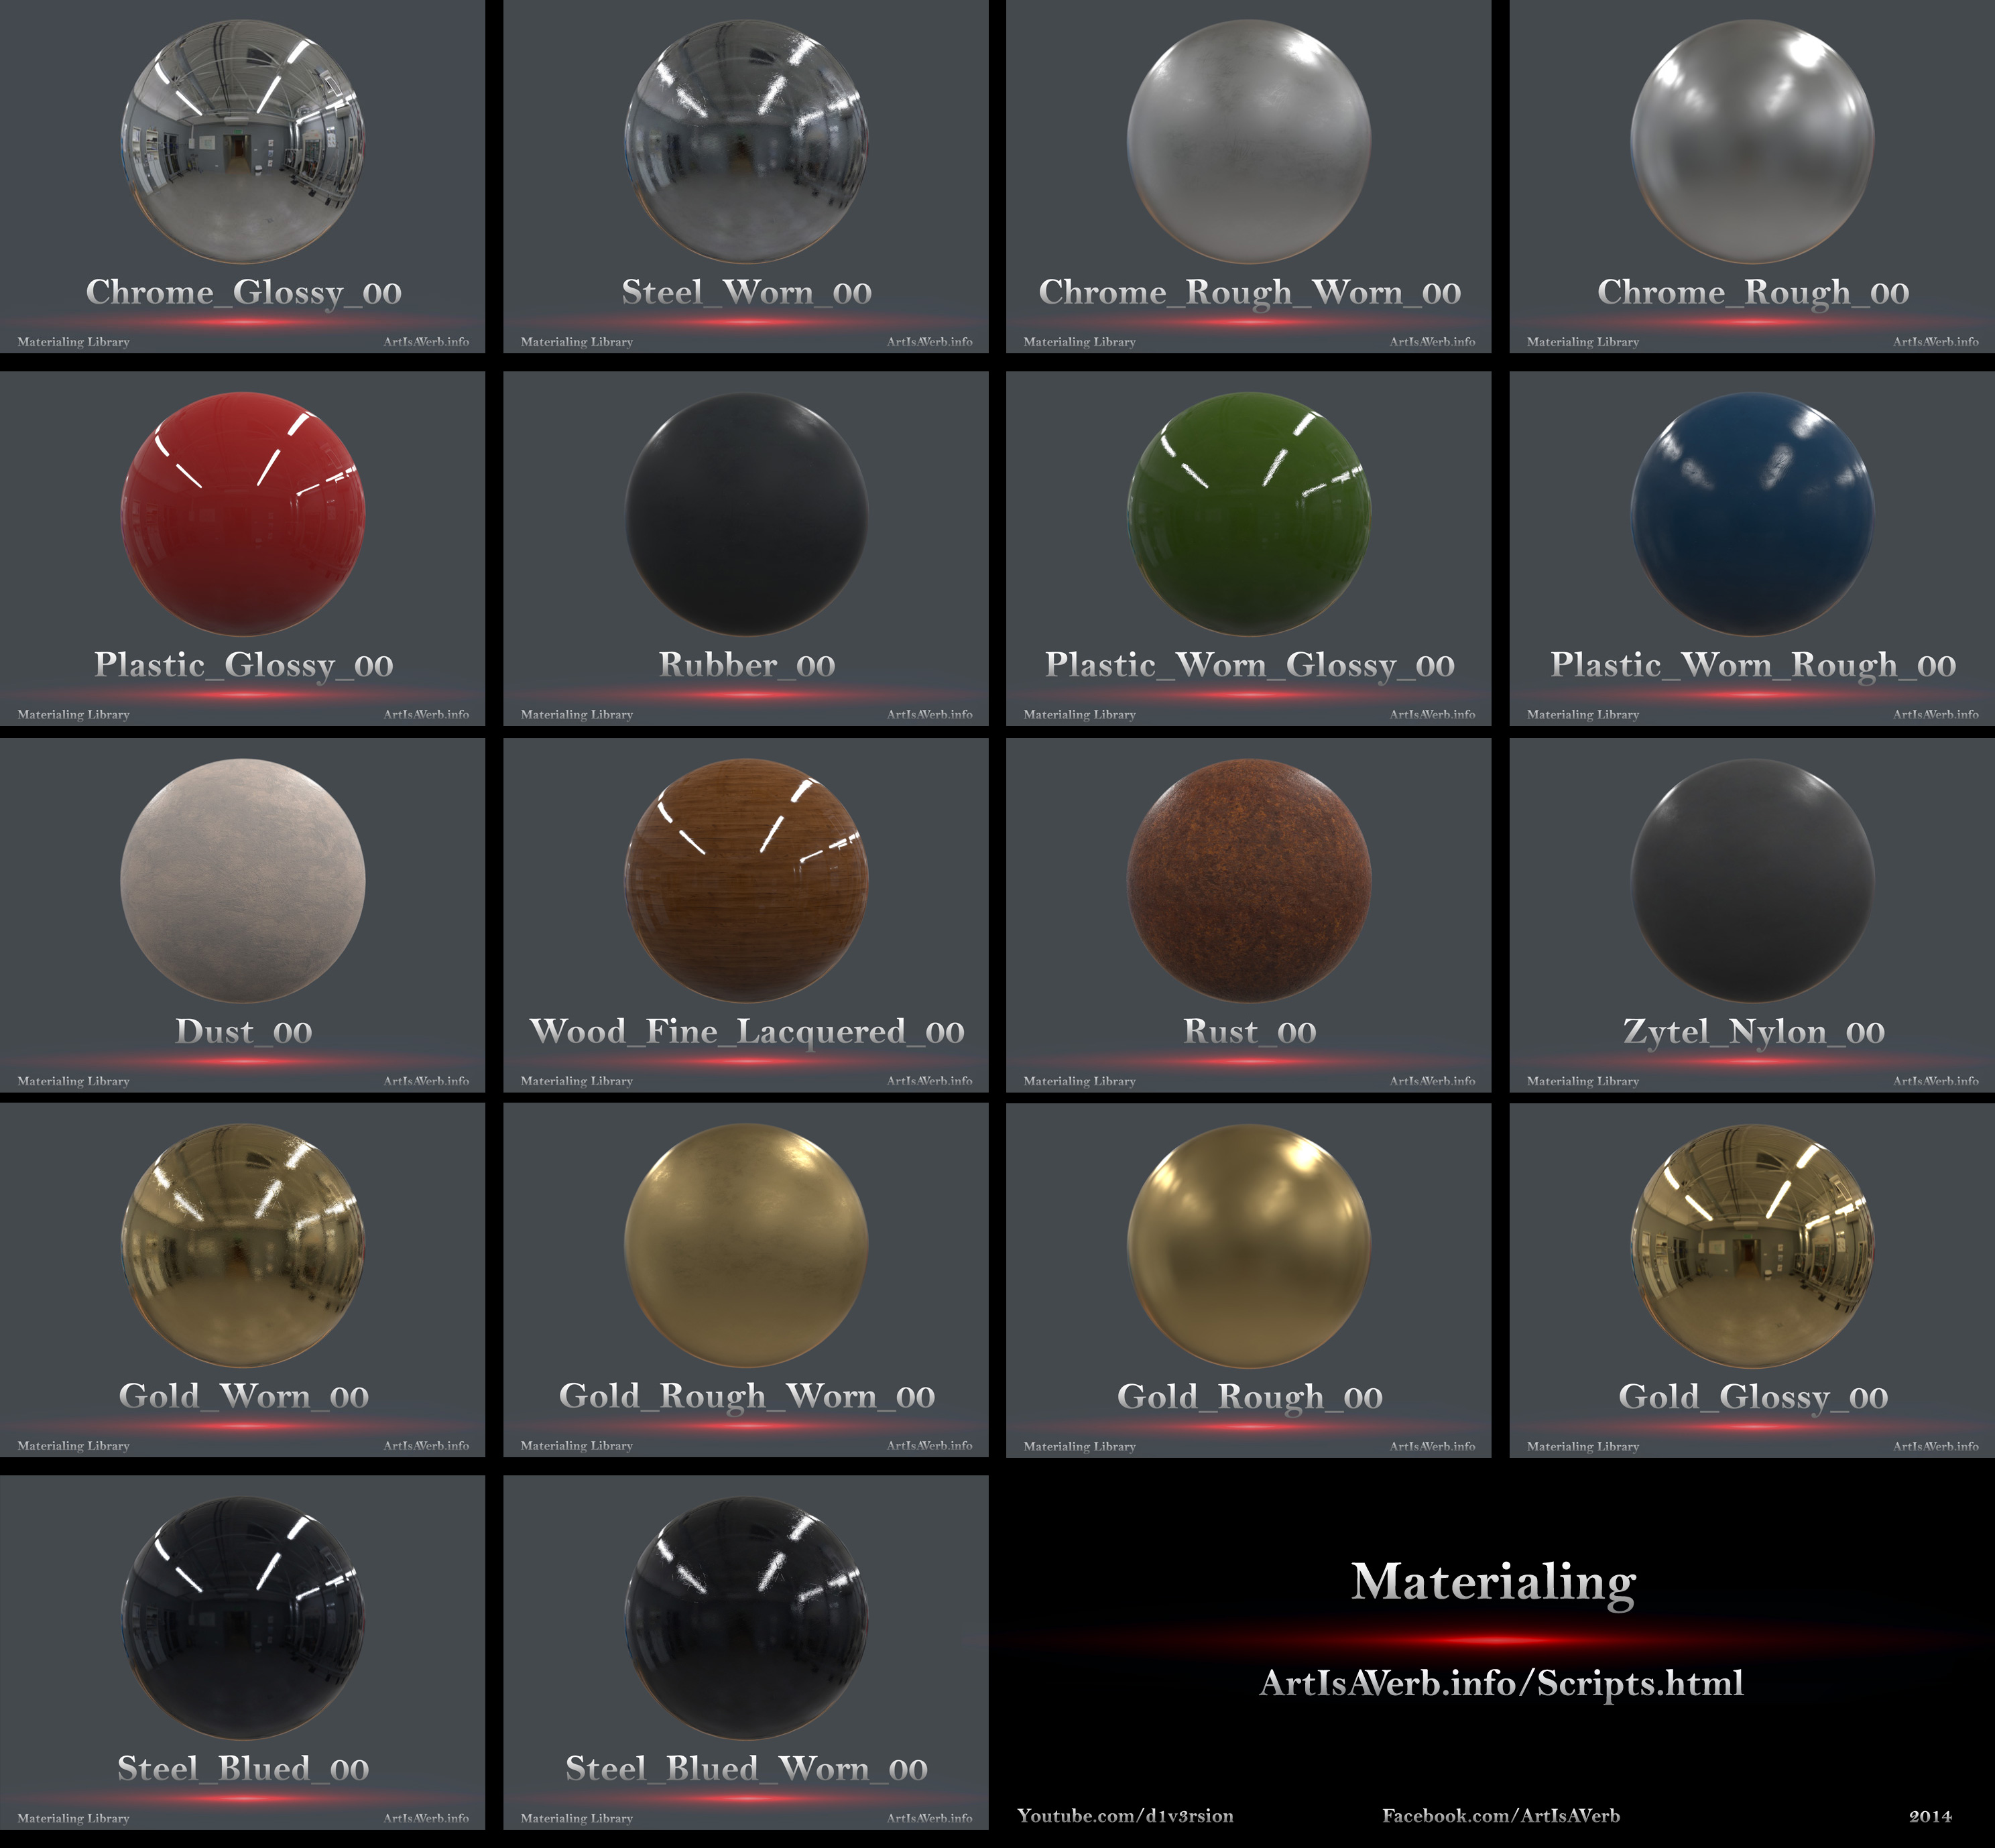 Vray material free download for maya | Free Vray material